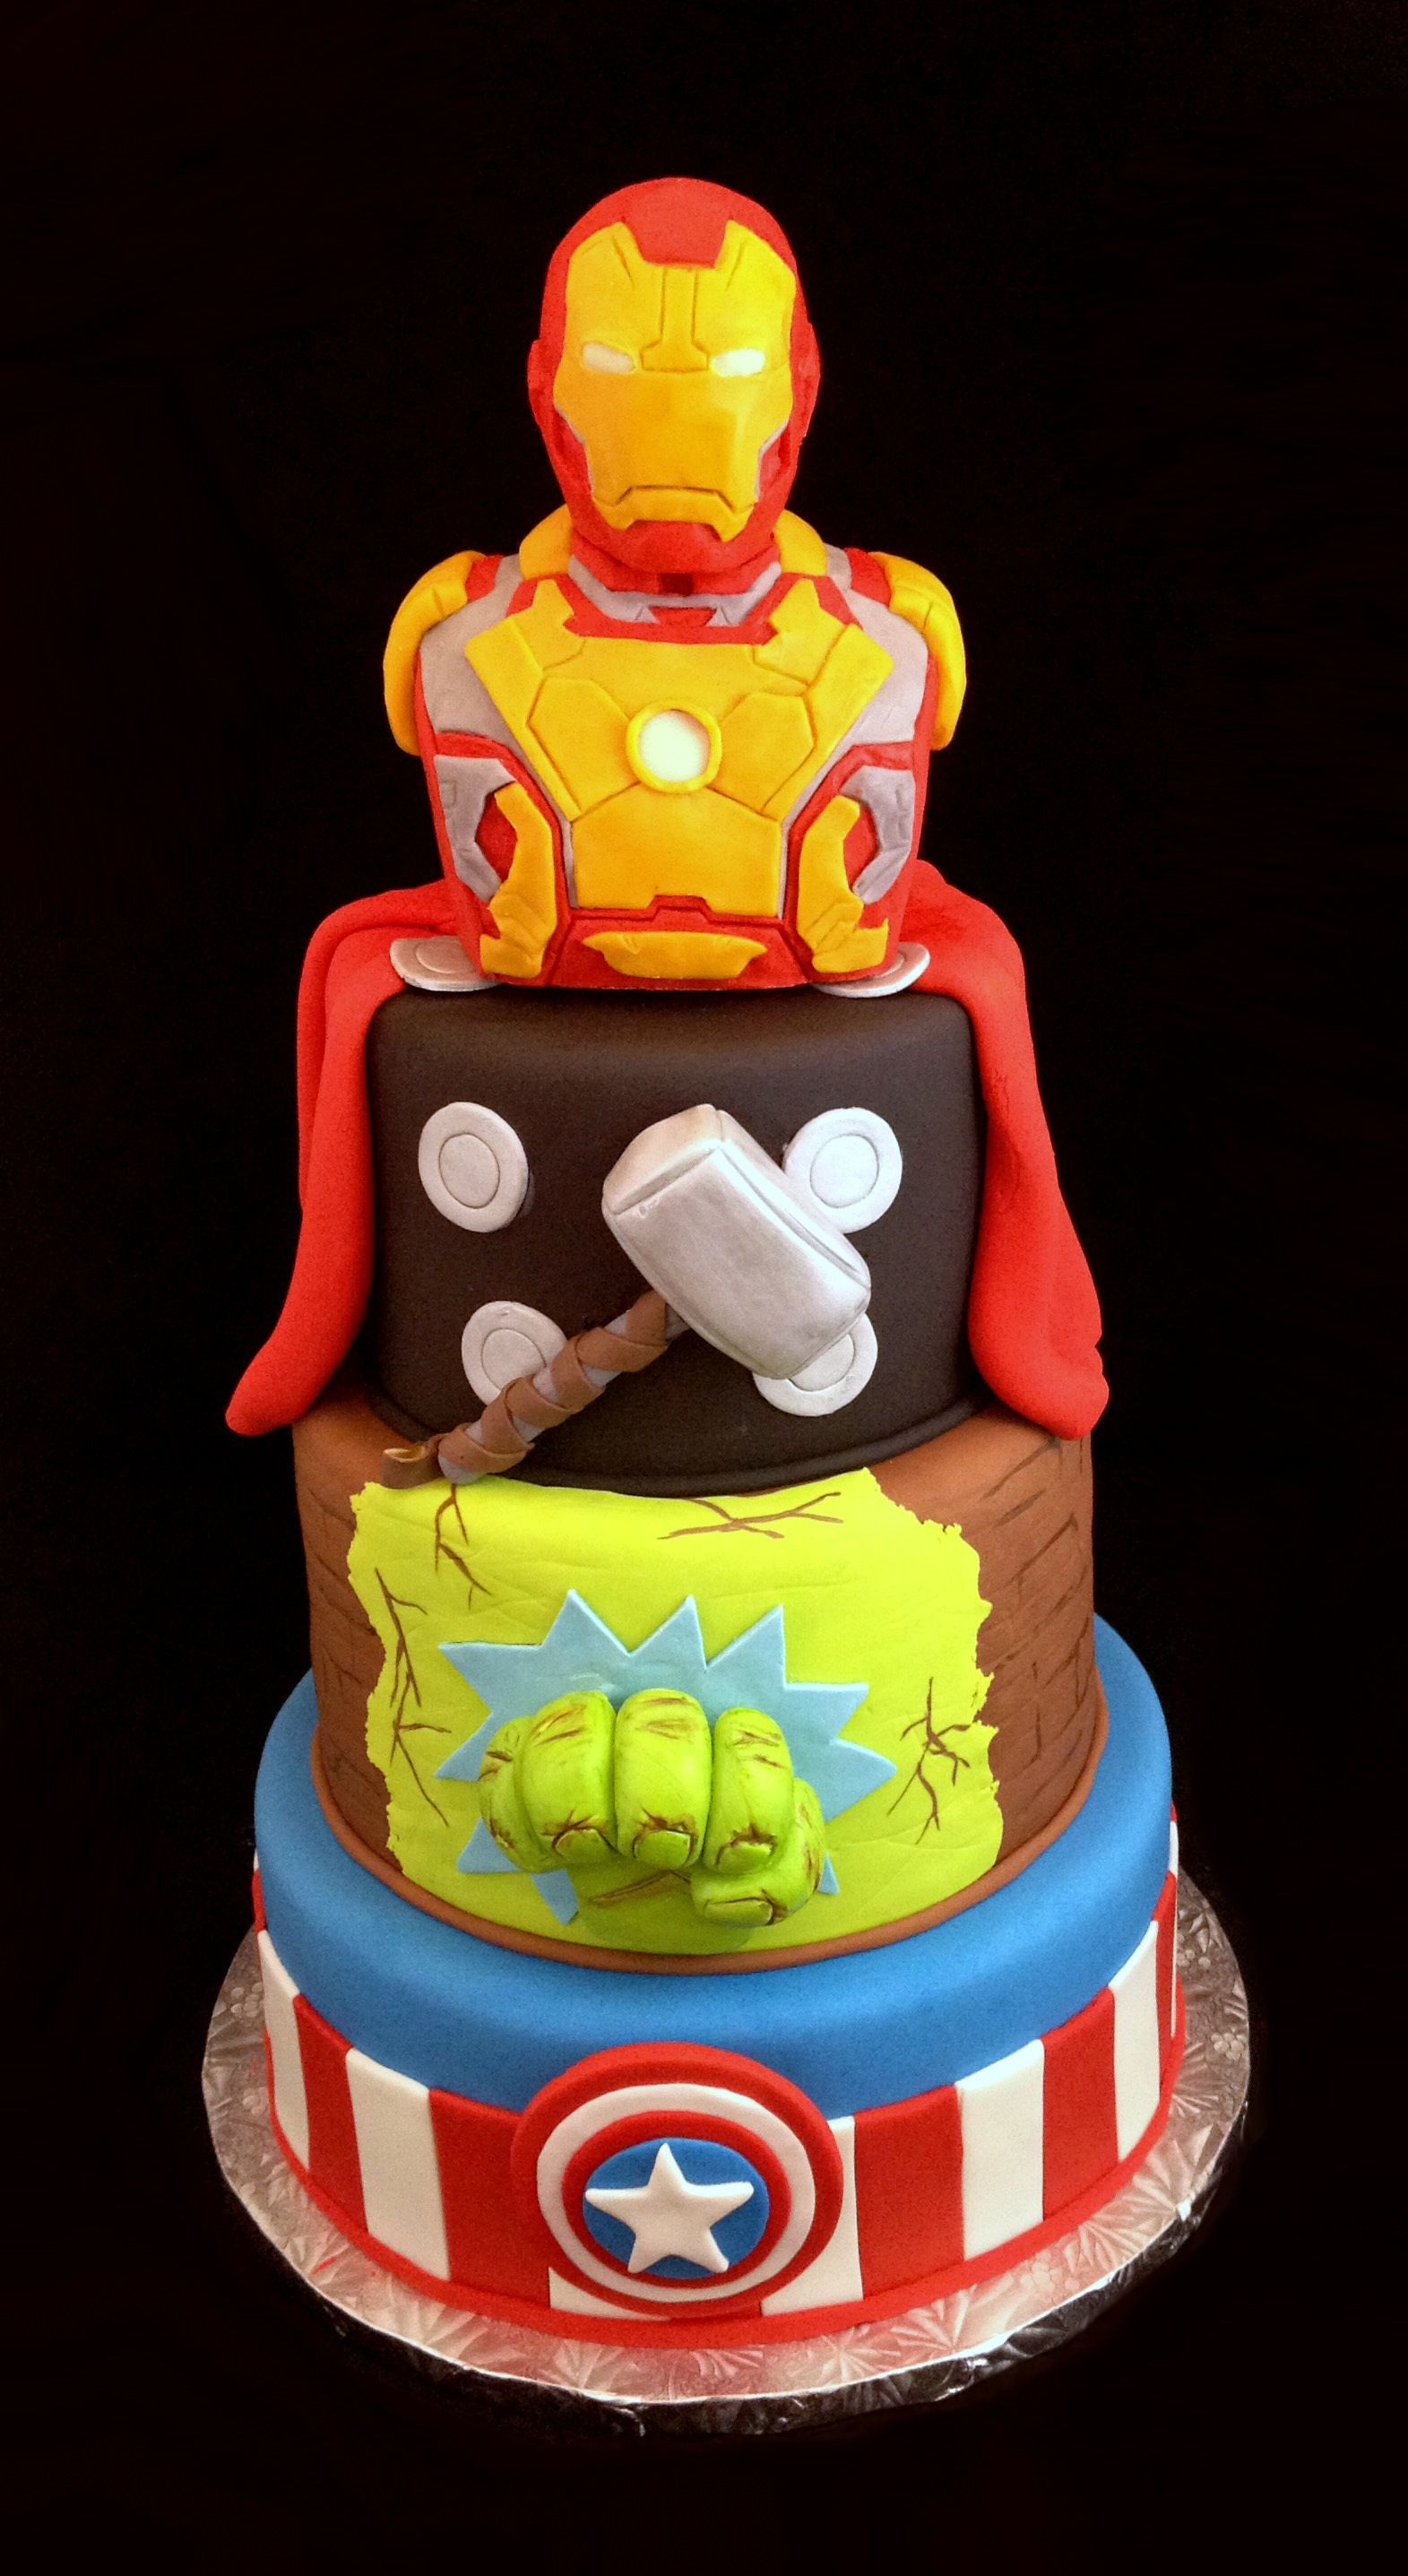 Admirable Avengers Cake A Little Extreme But Nice Detail Extreme Personalised Birthday Cards Petedlily Jamesorg